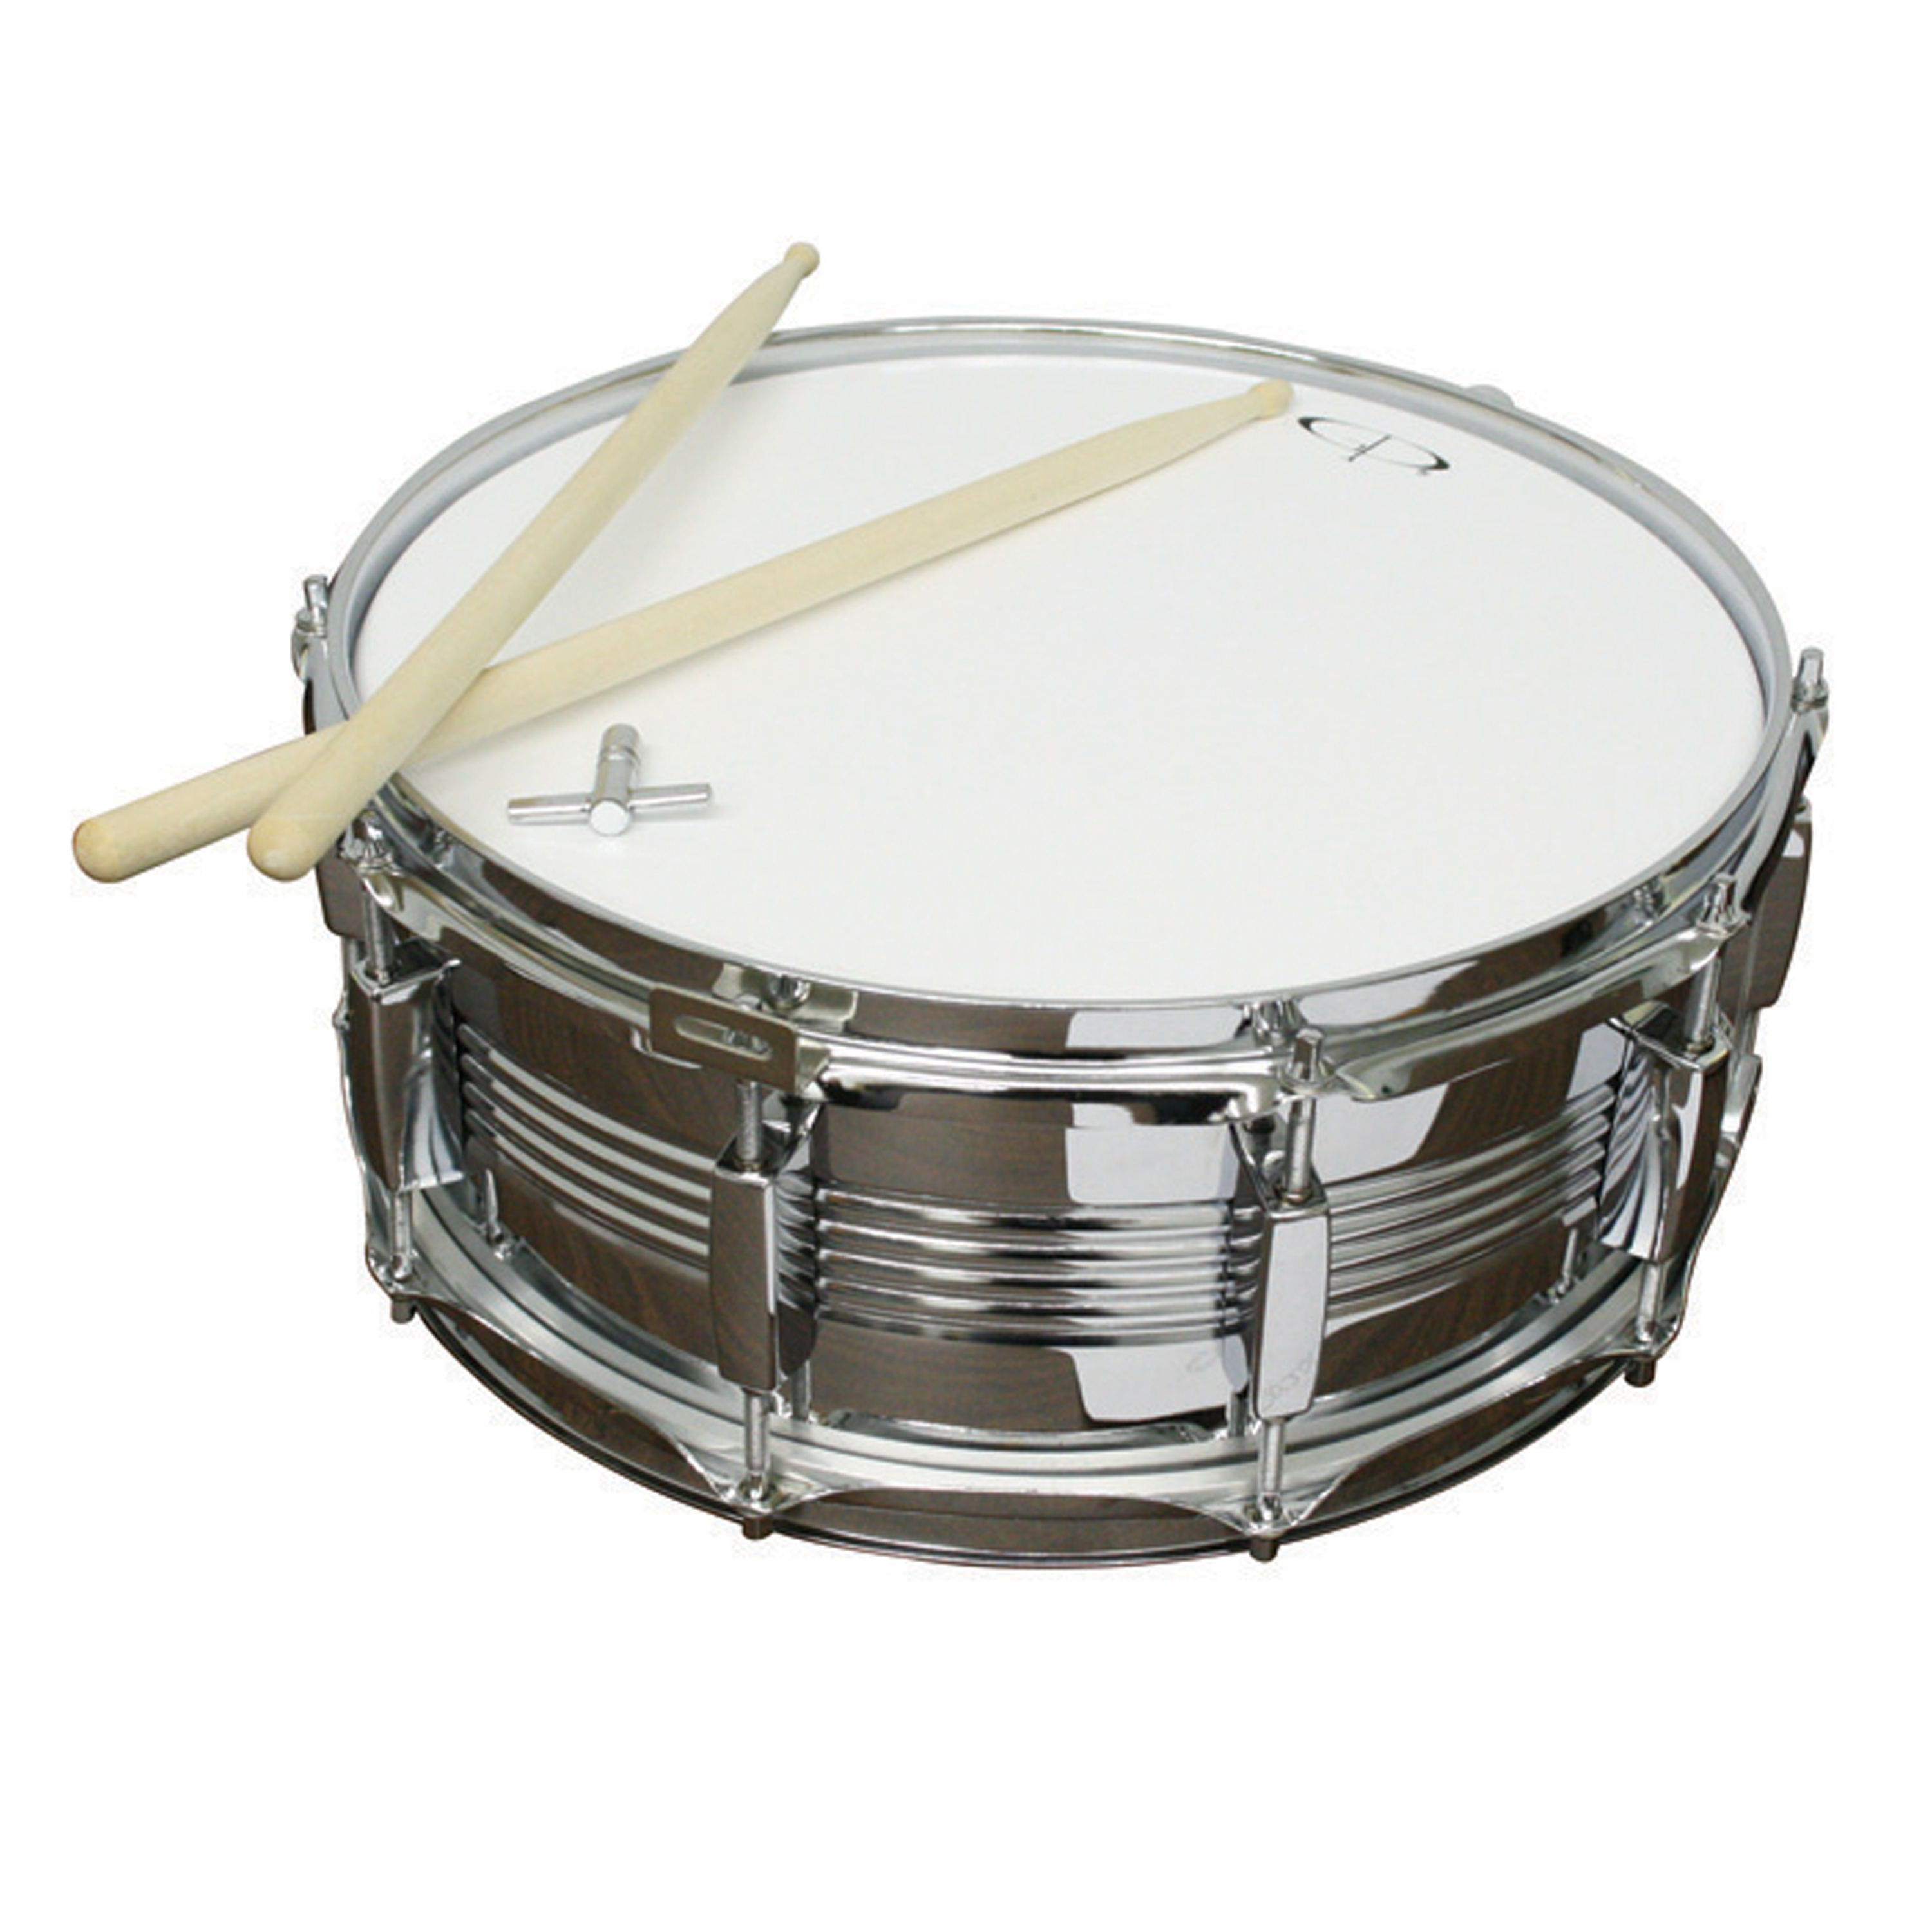 GP Percussion SDC201 14-inch, 10-Lug Metal Snare Drum